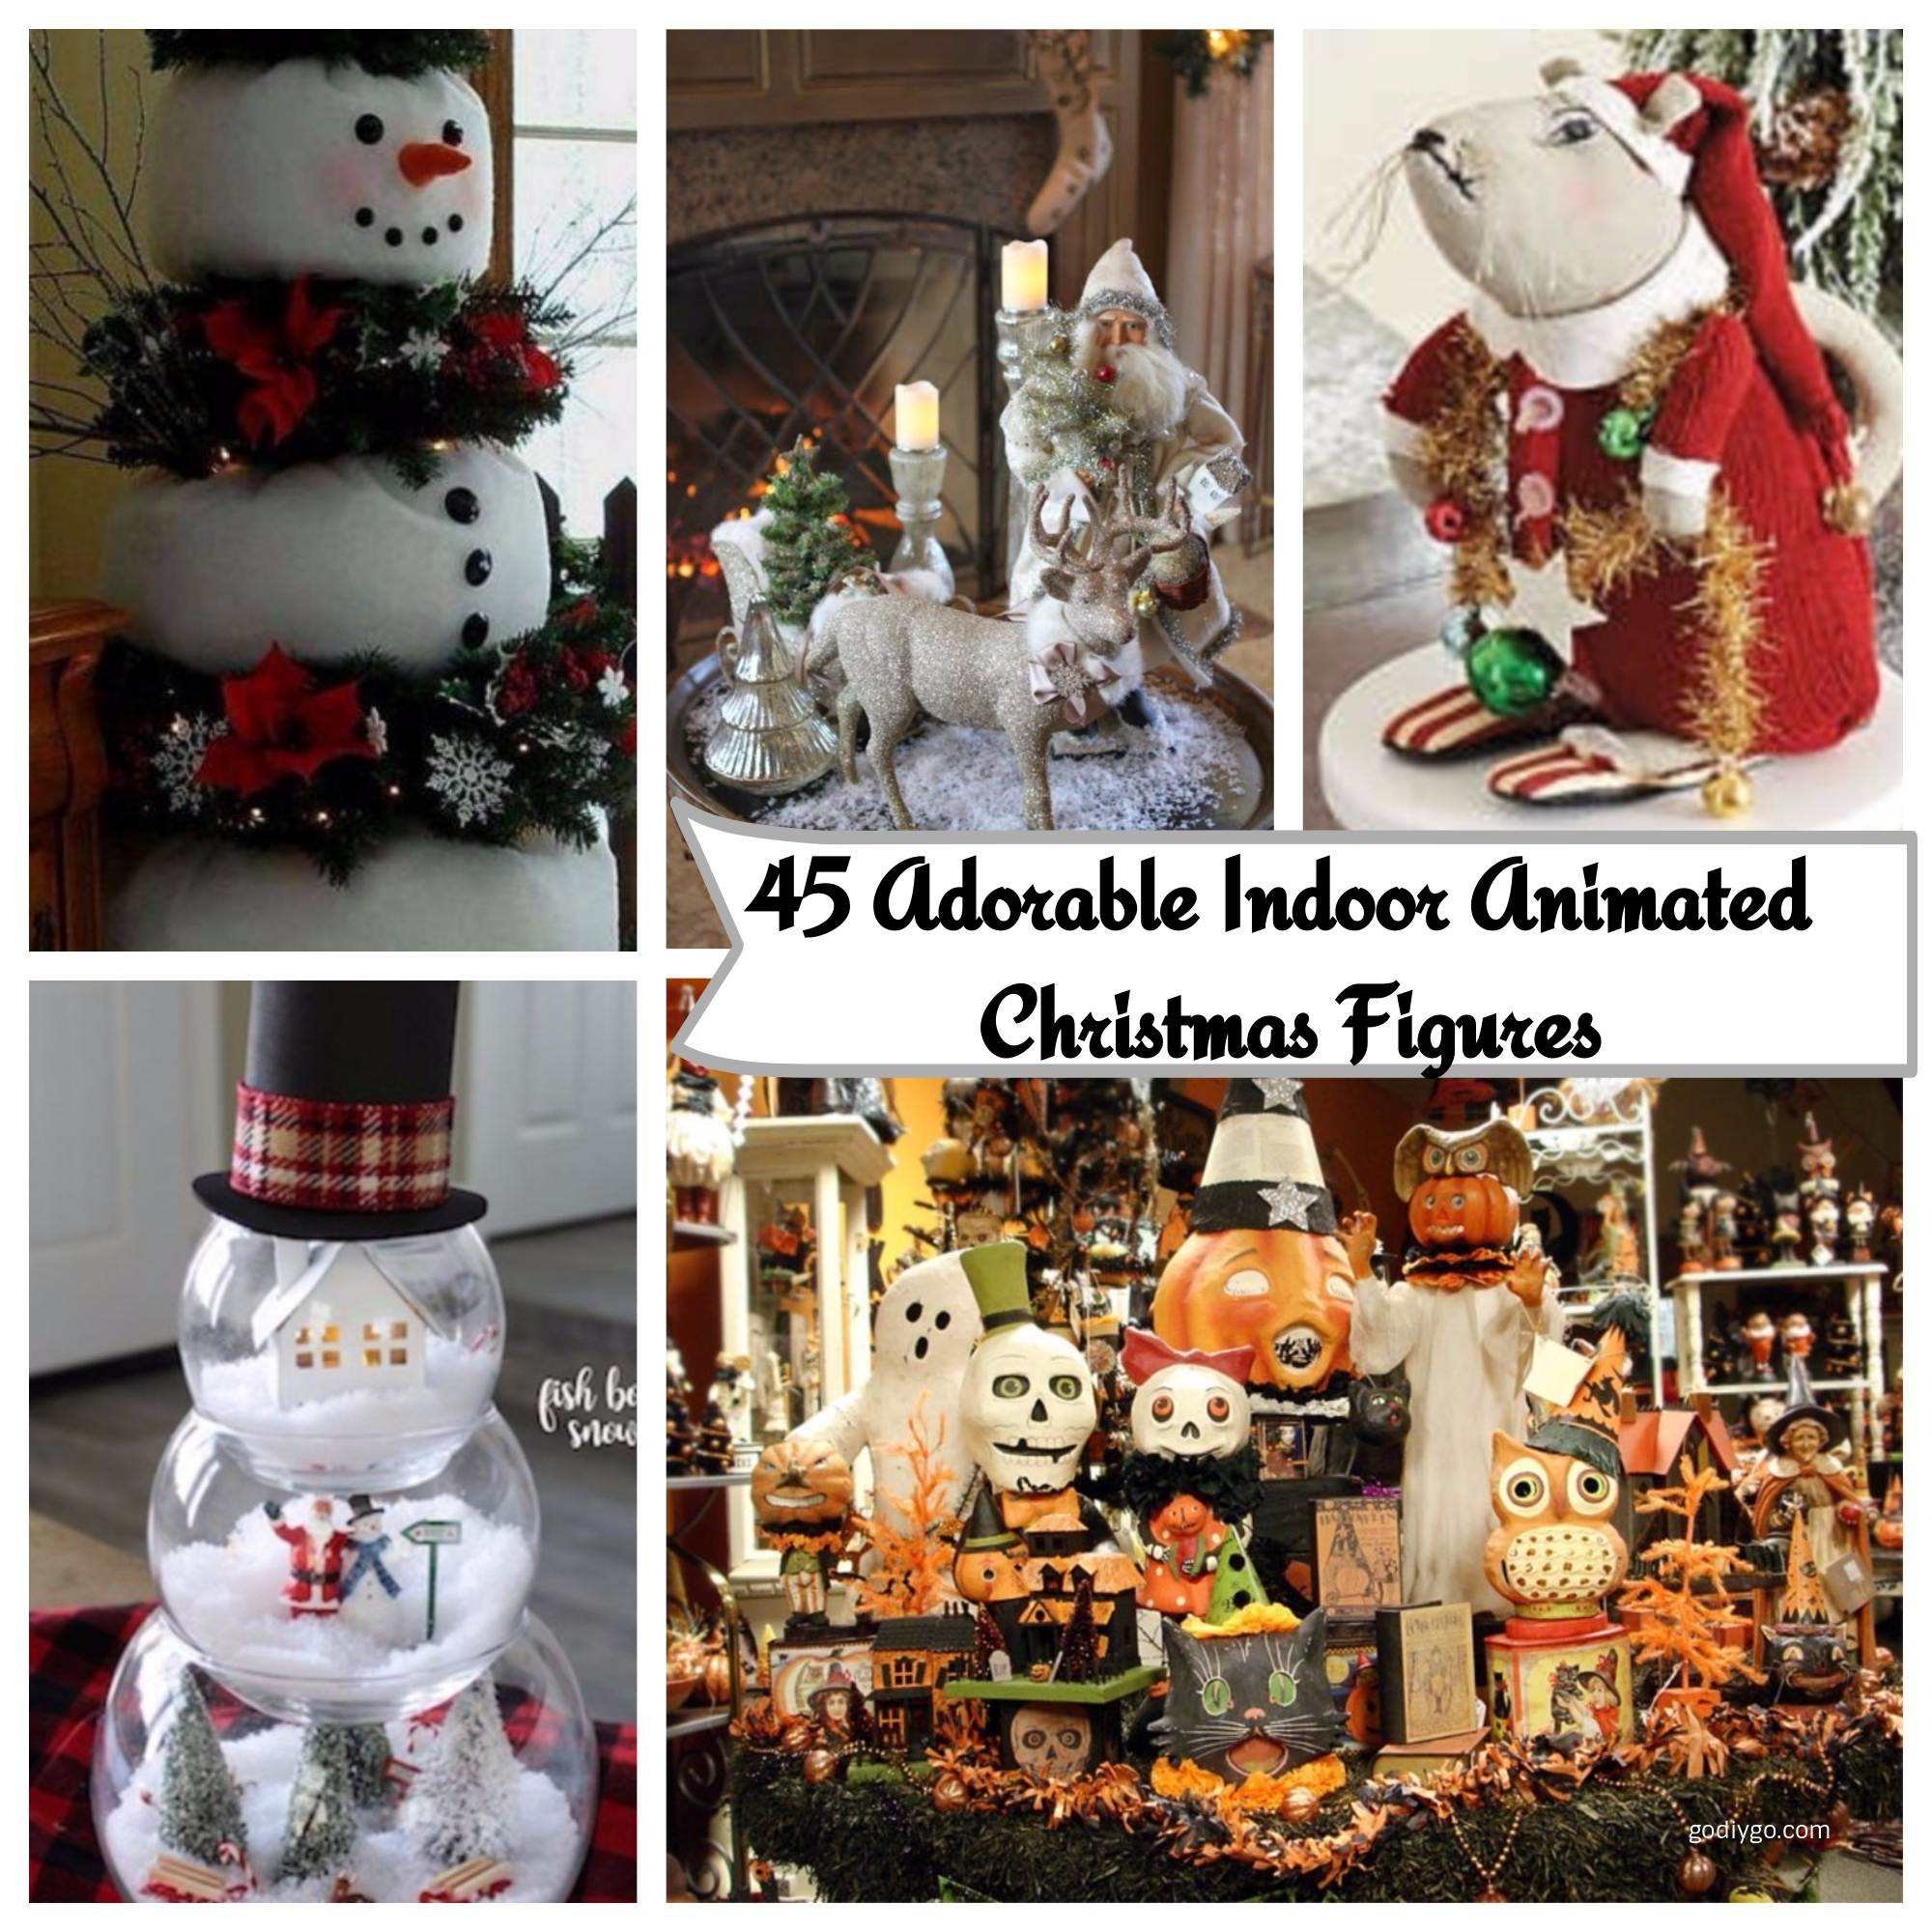 45 adorable indoor animated christmas figures godiygocom